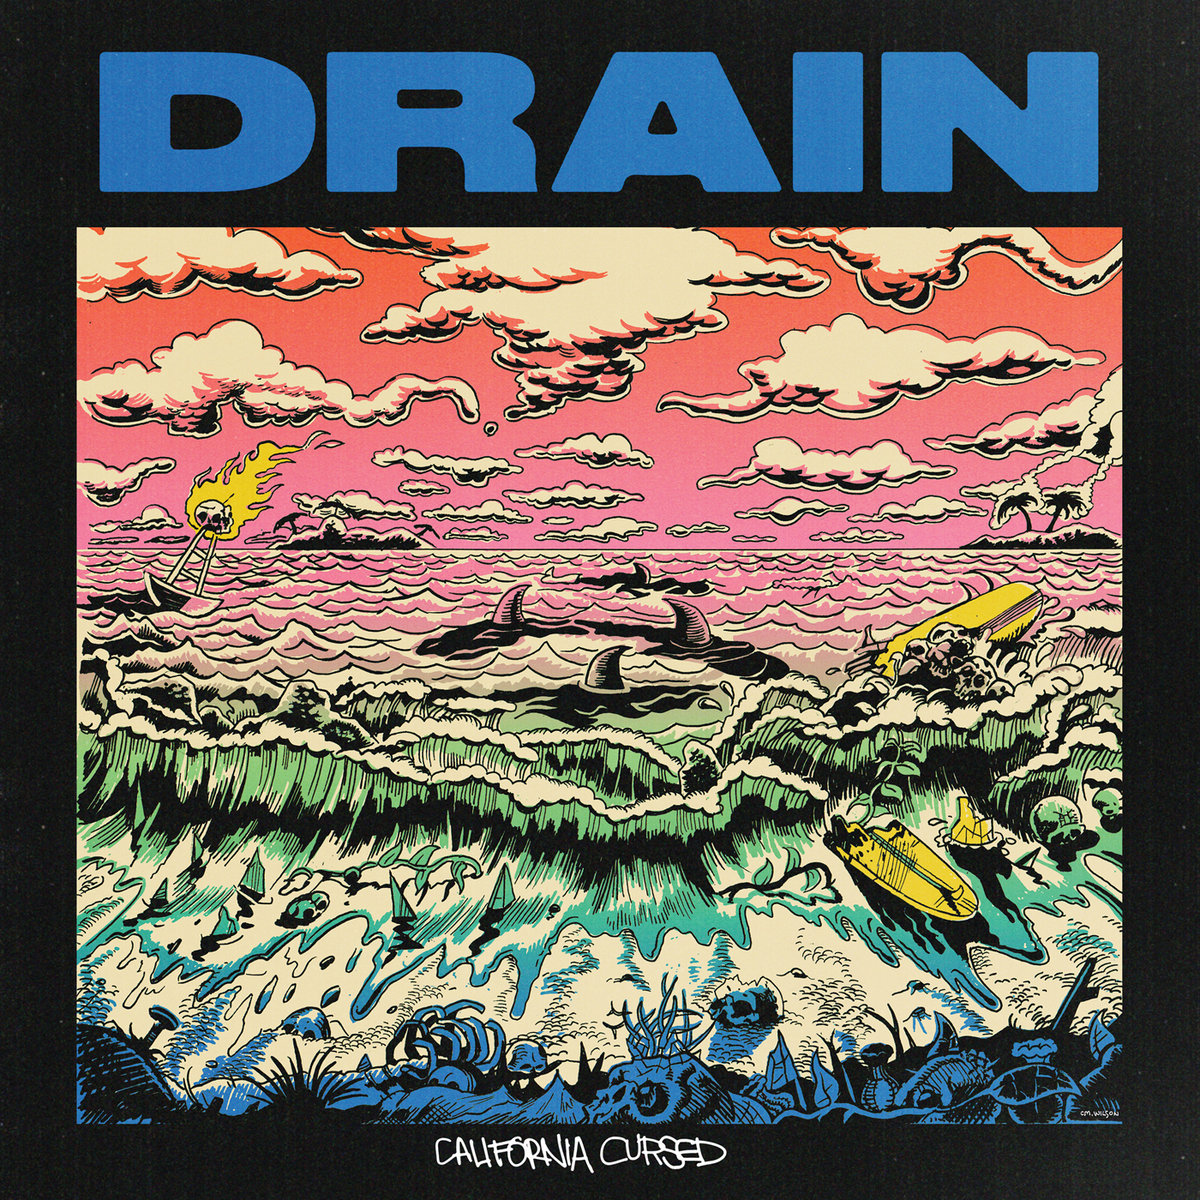 -sold out- Drain 'California cursed' LP